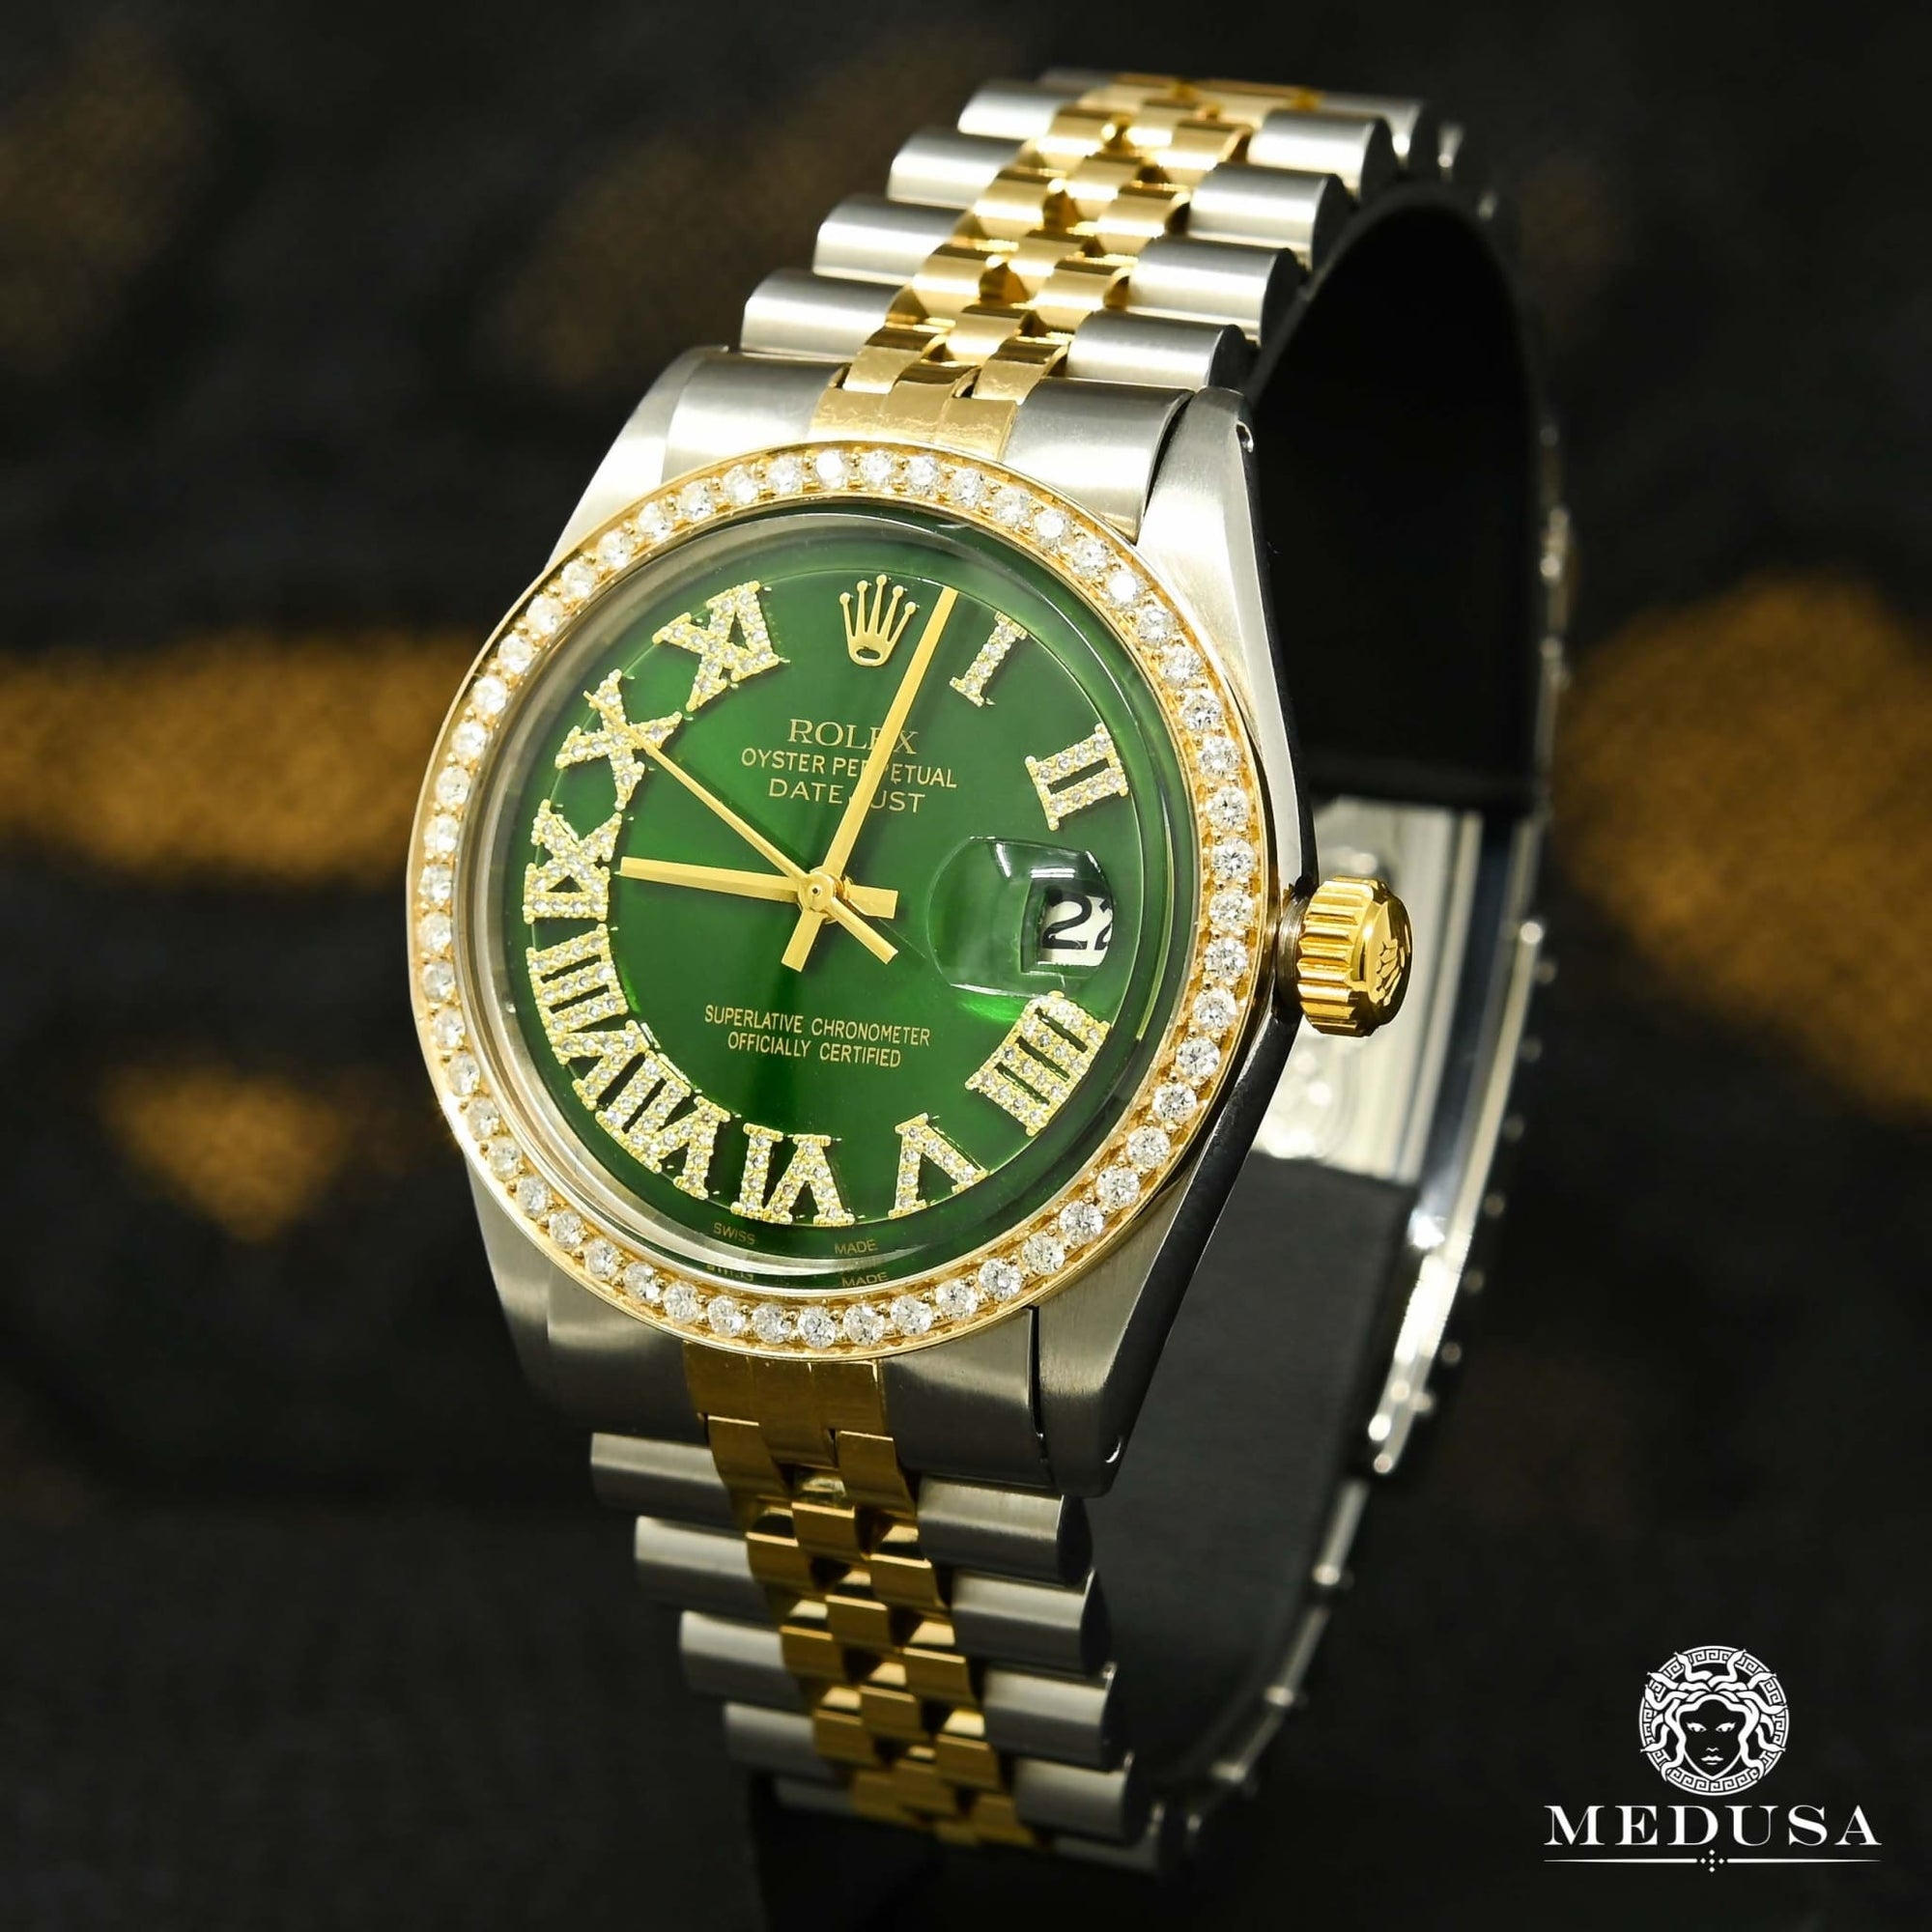 Montre Rolex | Montre Homme Rolex Datejust 36mm - Green Vintage Or 2 Tons